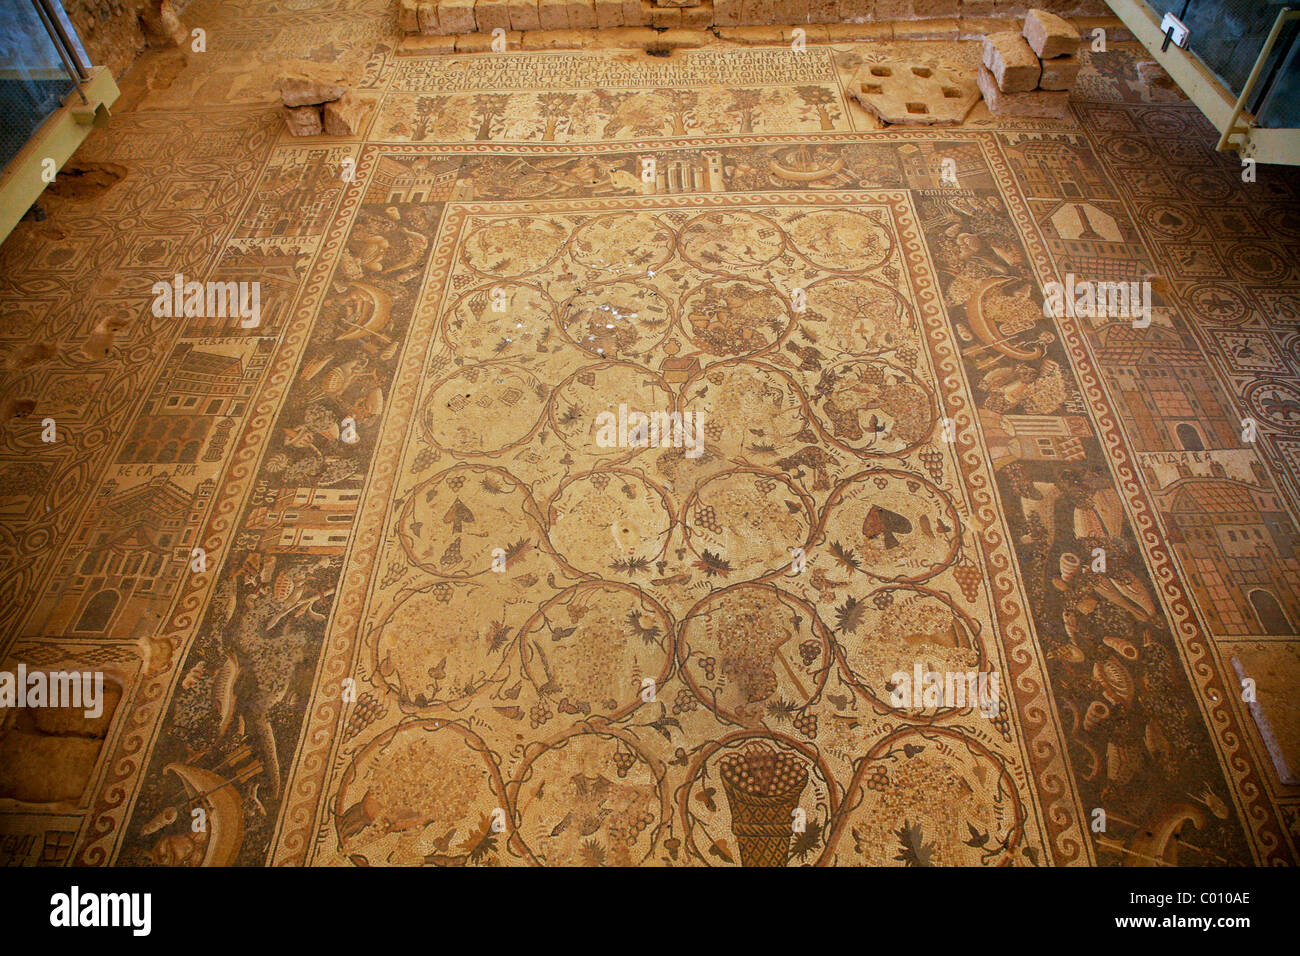 Mosaics at St. Stephen church in Umm Ar-Rasas, Jordan. Stock Photo